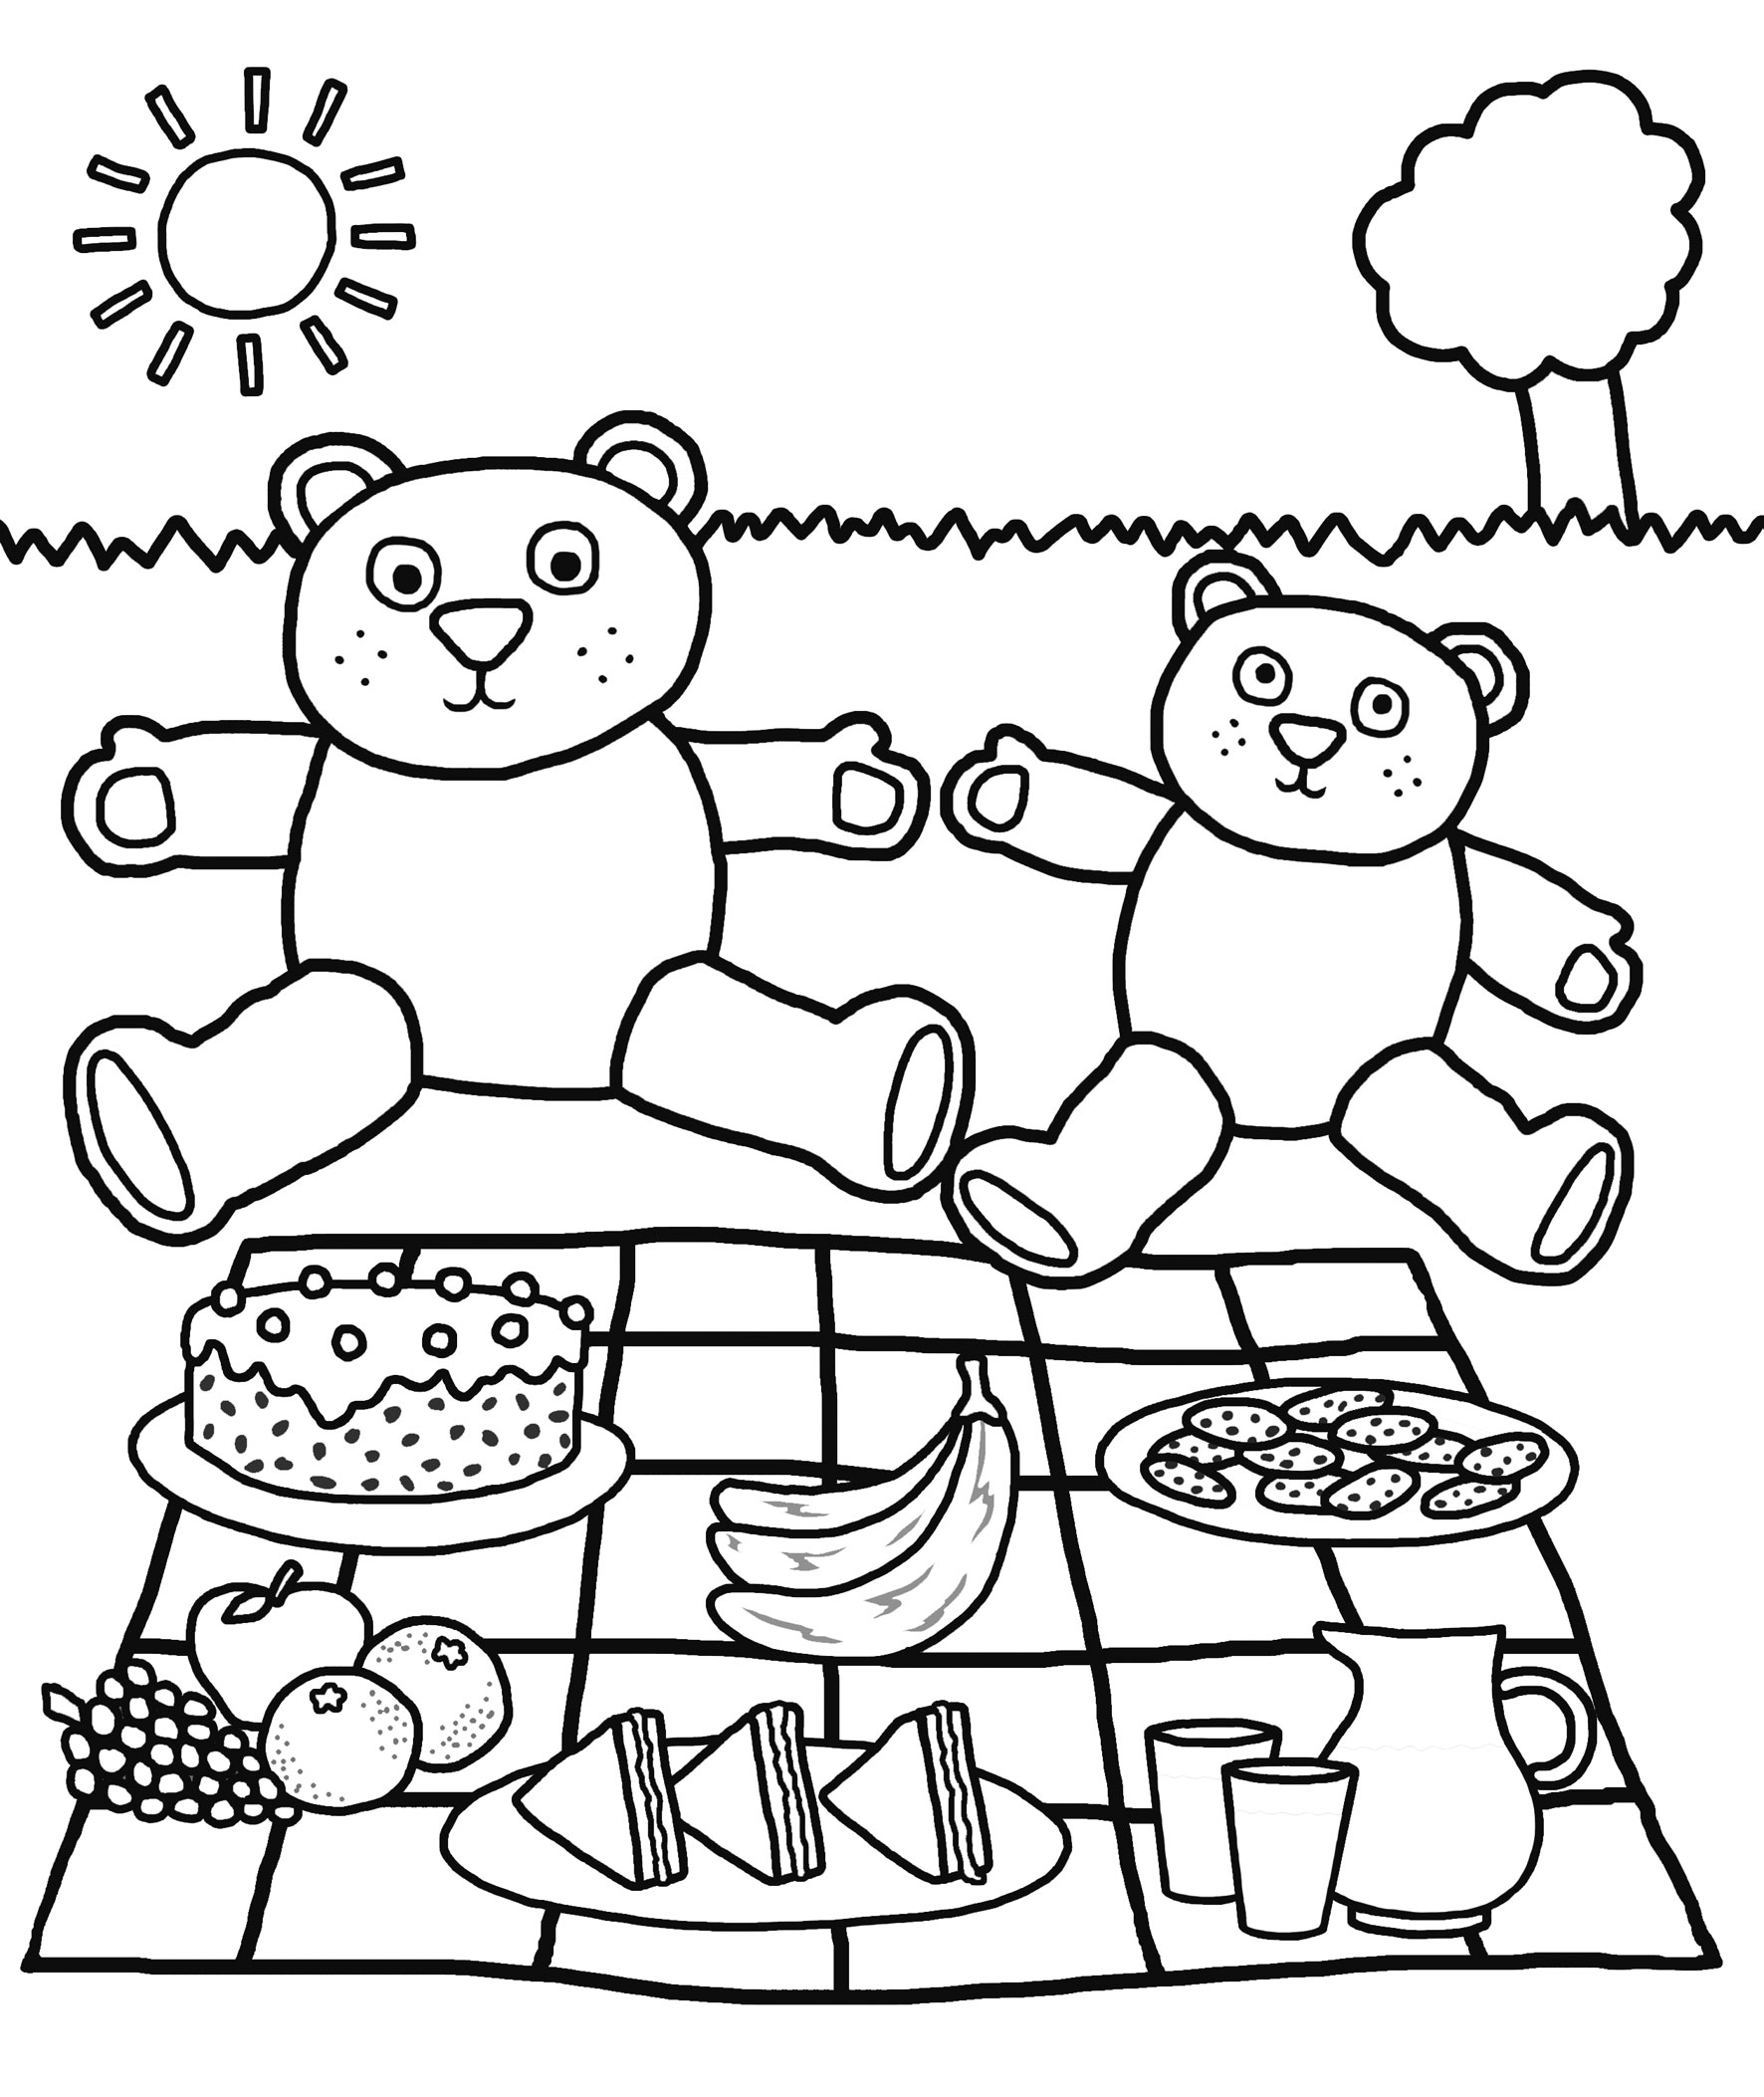 coloring pages to color kinder - photo#3